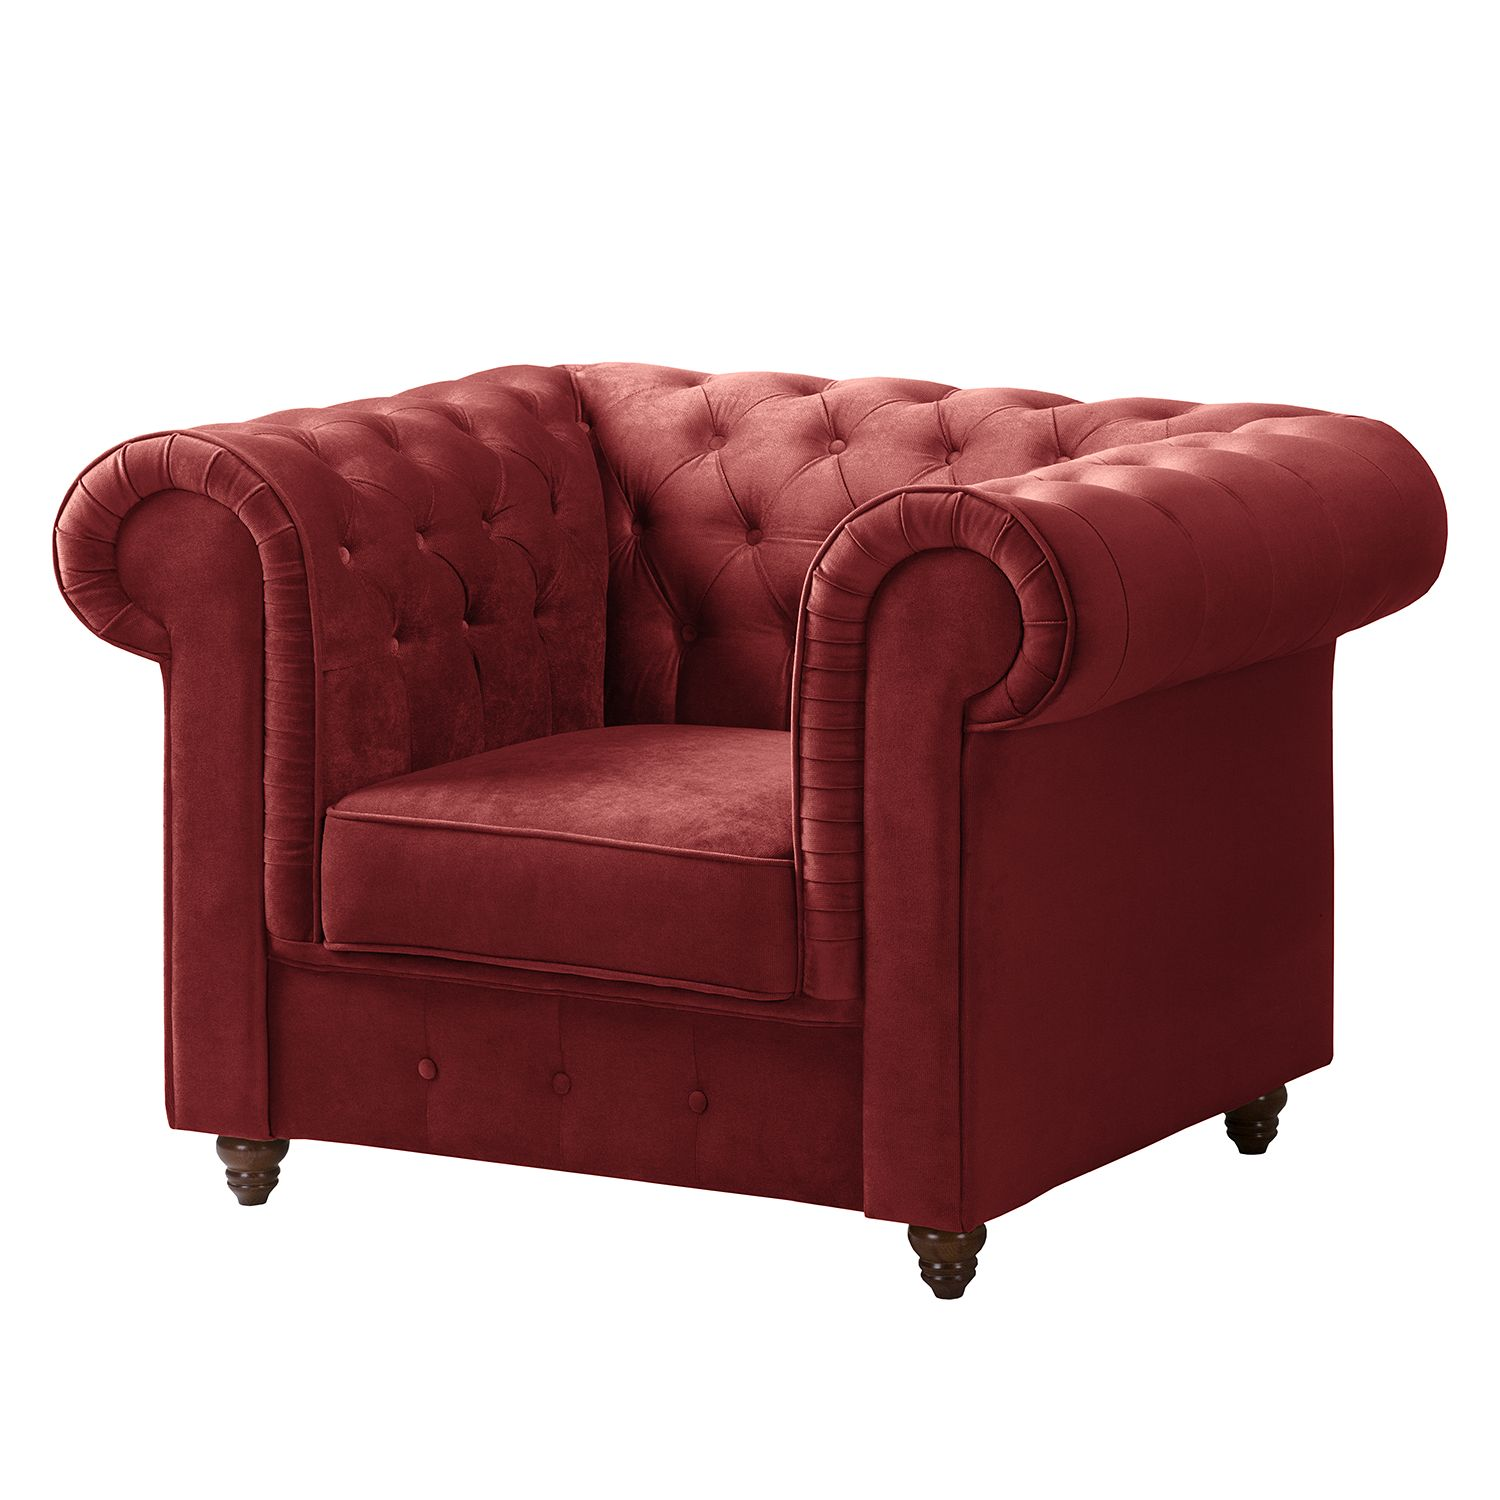 Chesterfield-fauteuil Pintano - fluweel - Rood, ars manufacti